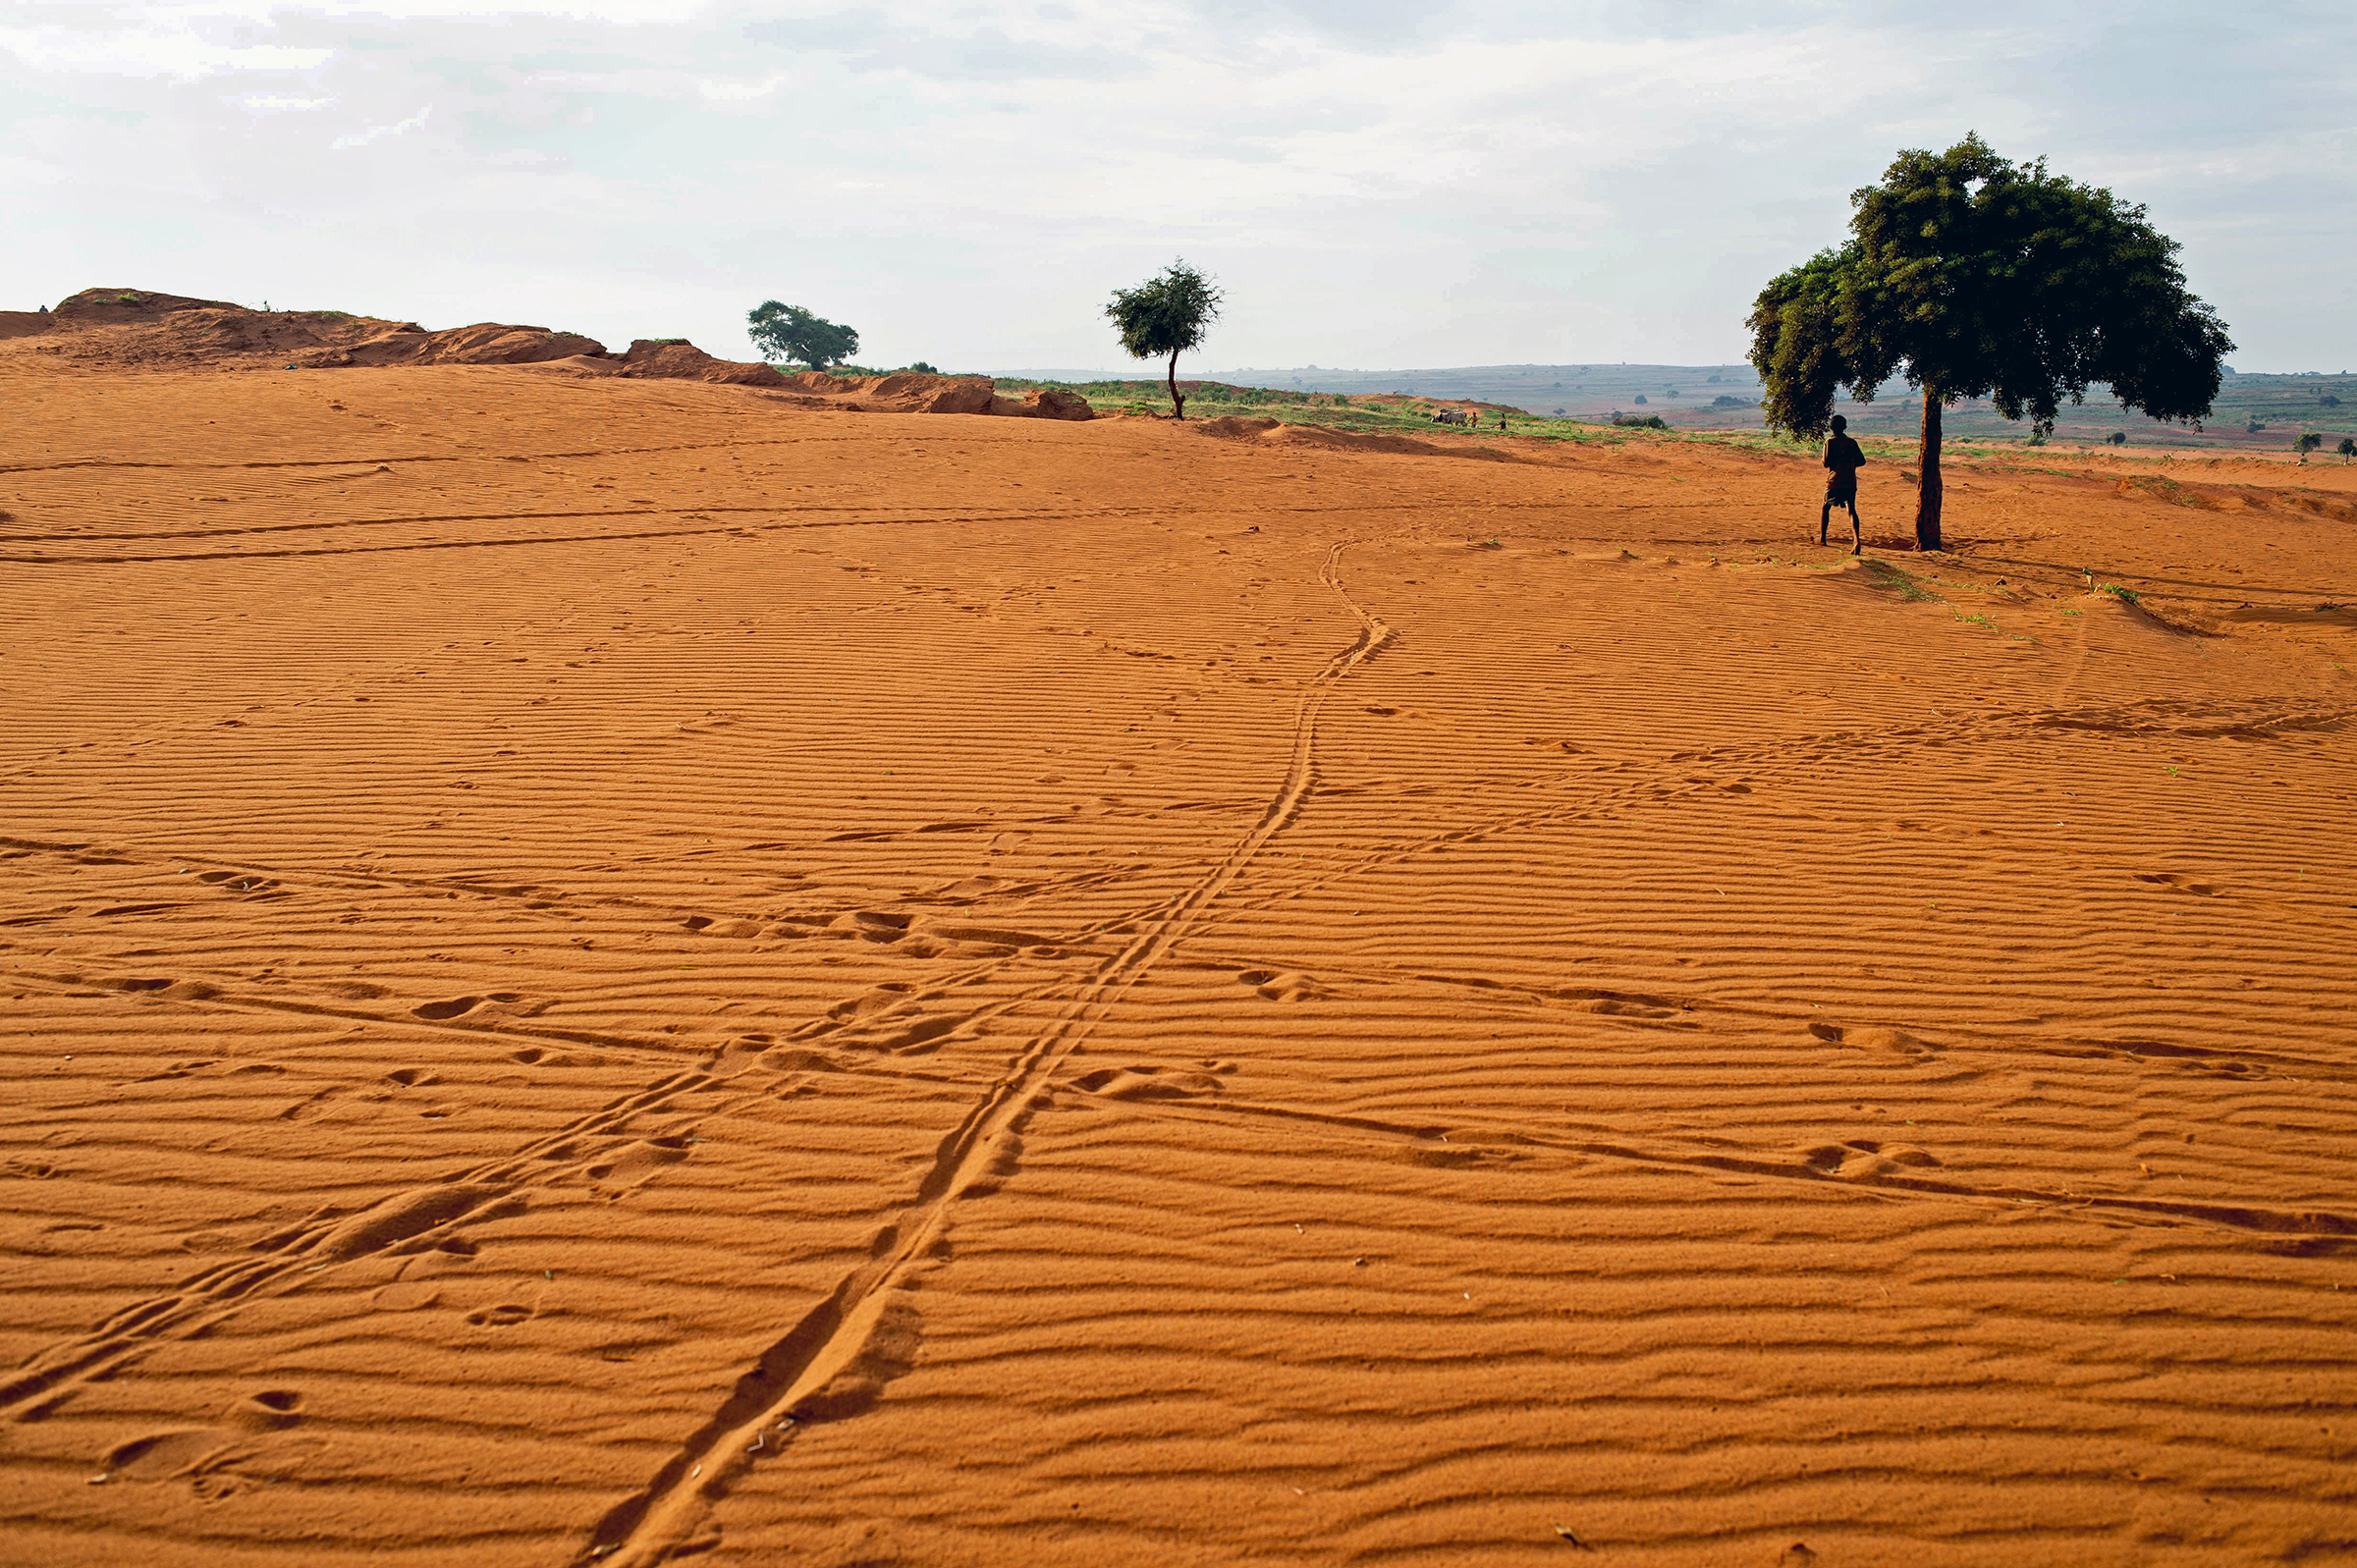 Cropland is covered by sand in Betsimeda, Maroalomainty commune, Ambovombe district, Madagascar May 2, 2021.